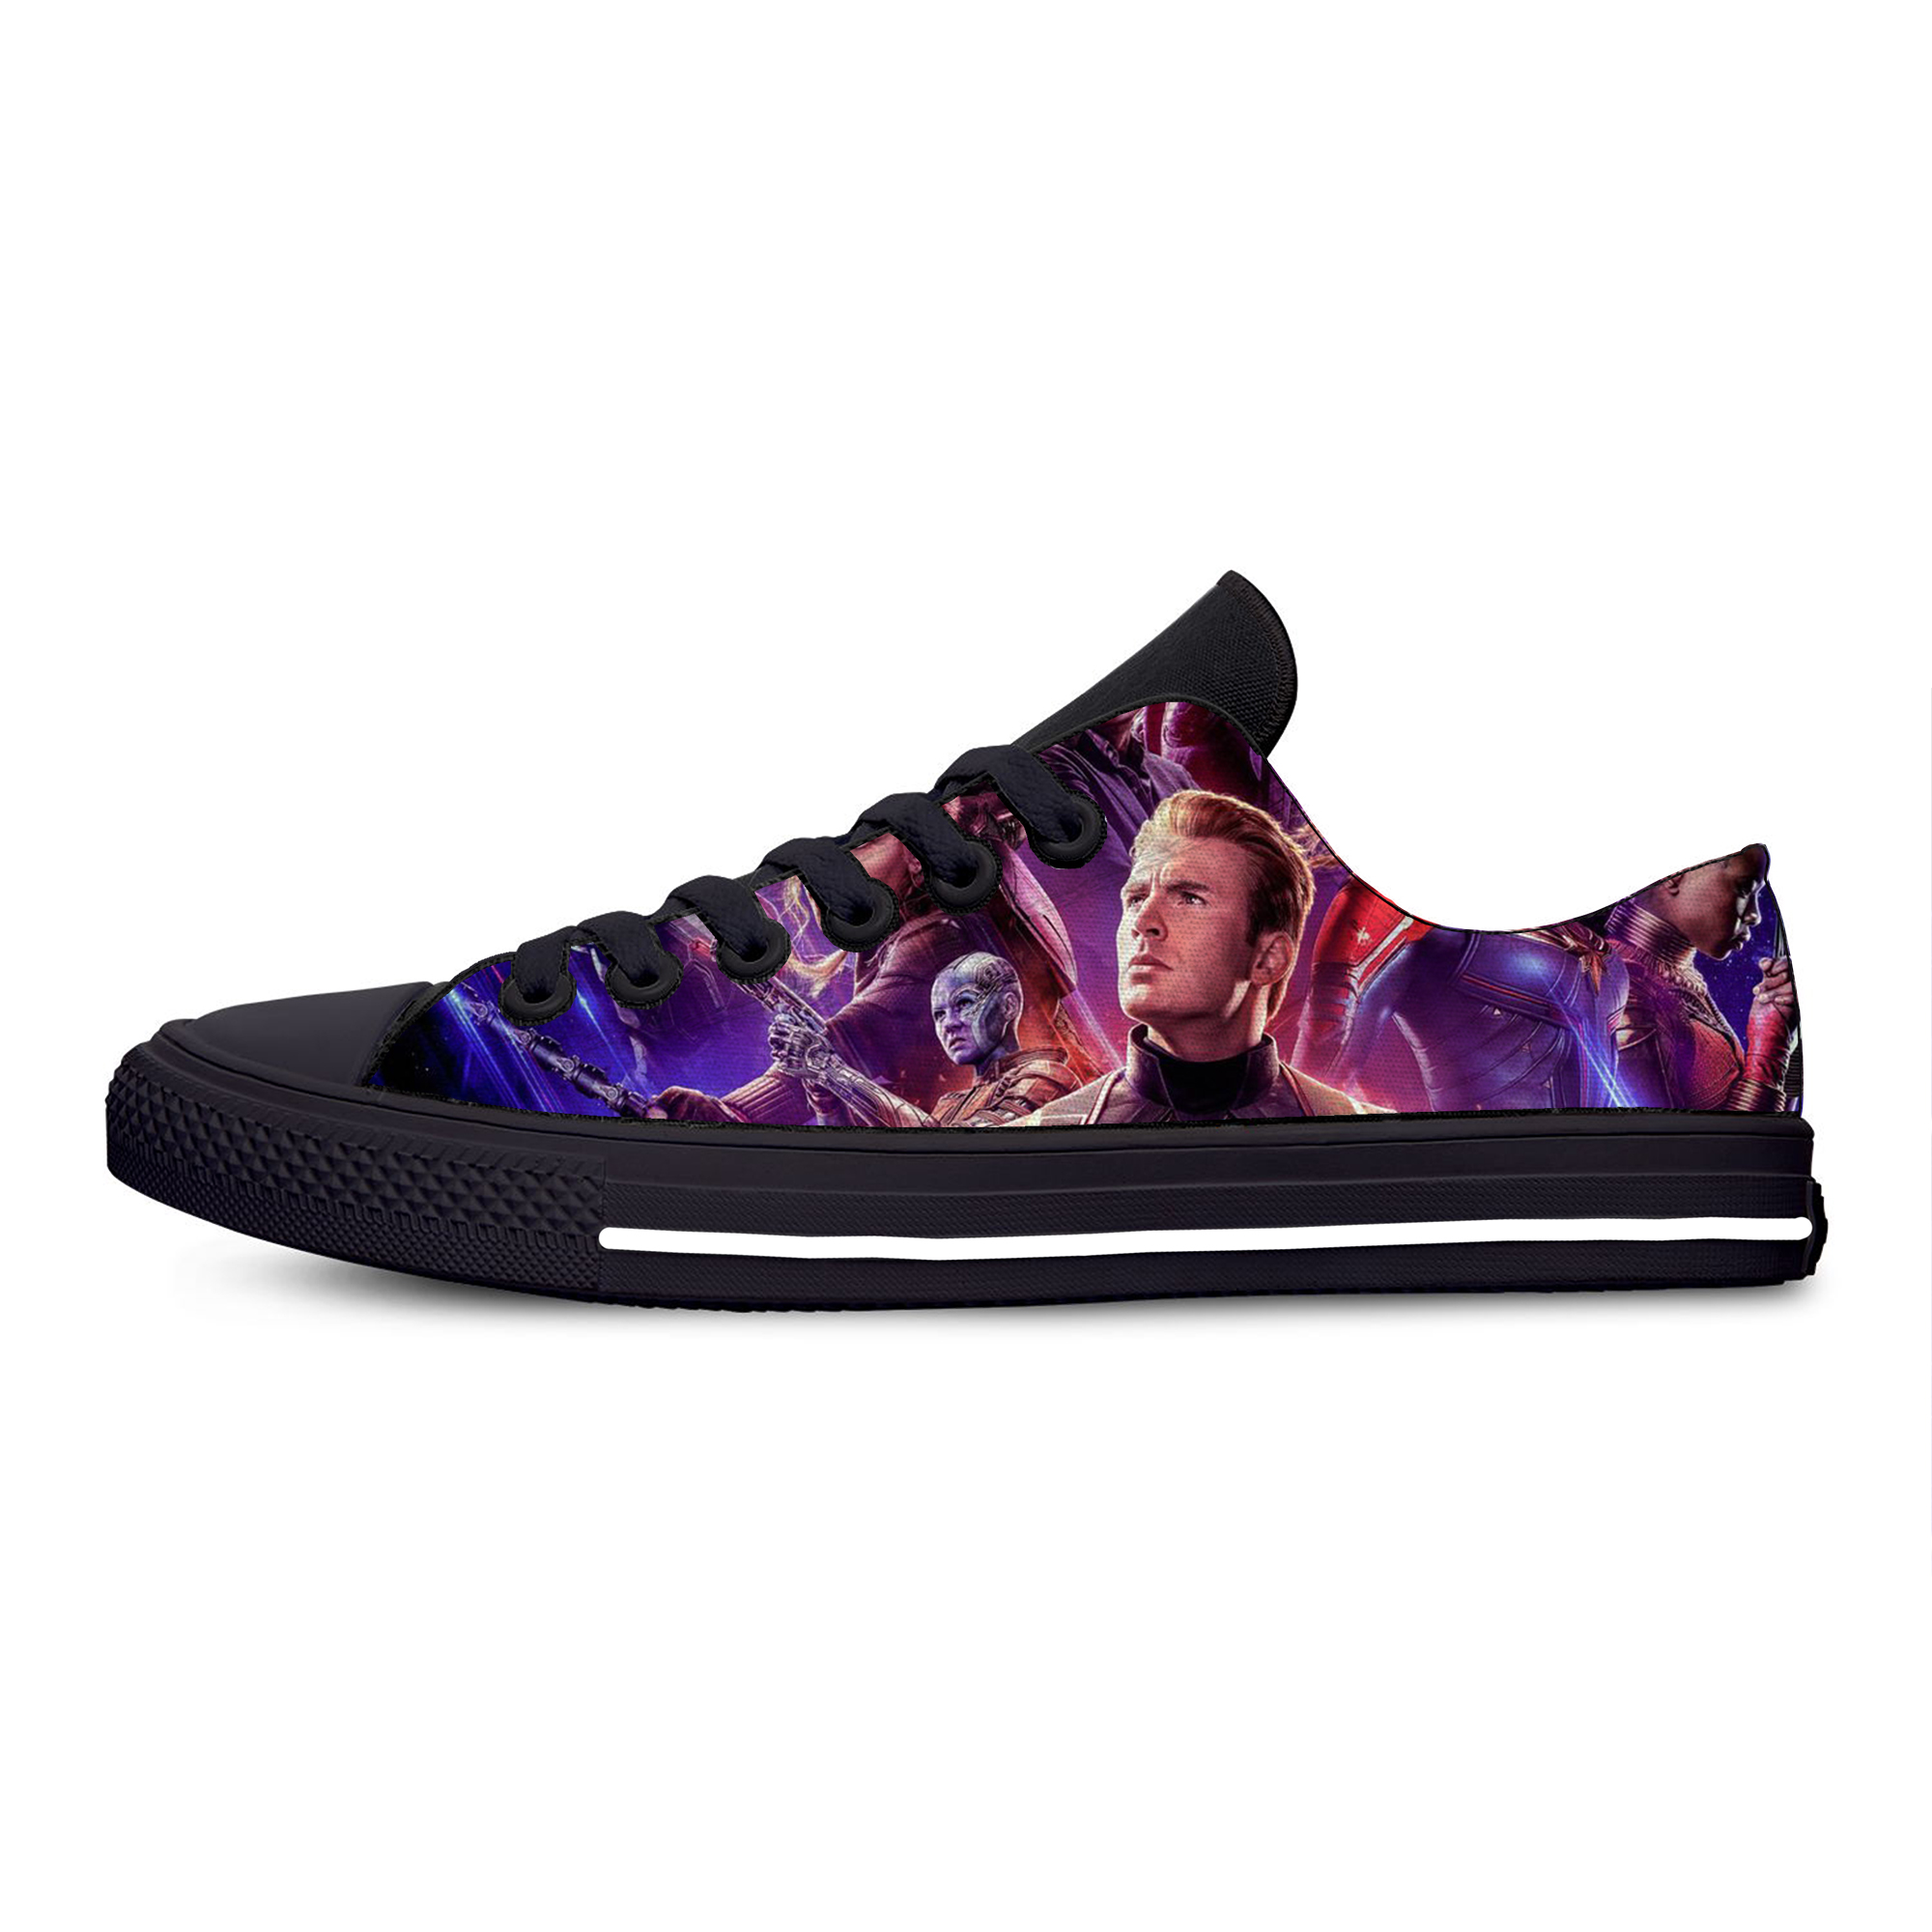 marvel Avengers Endgame Lace Up Breathable Shoes Summer Canvas Fashion Lightweight Sneakers for Women Men